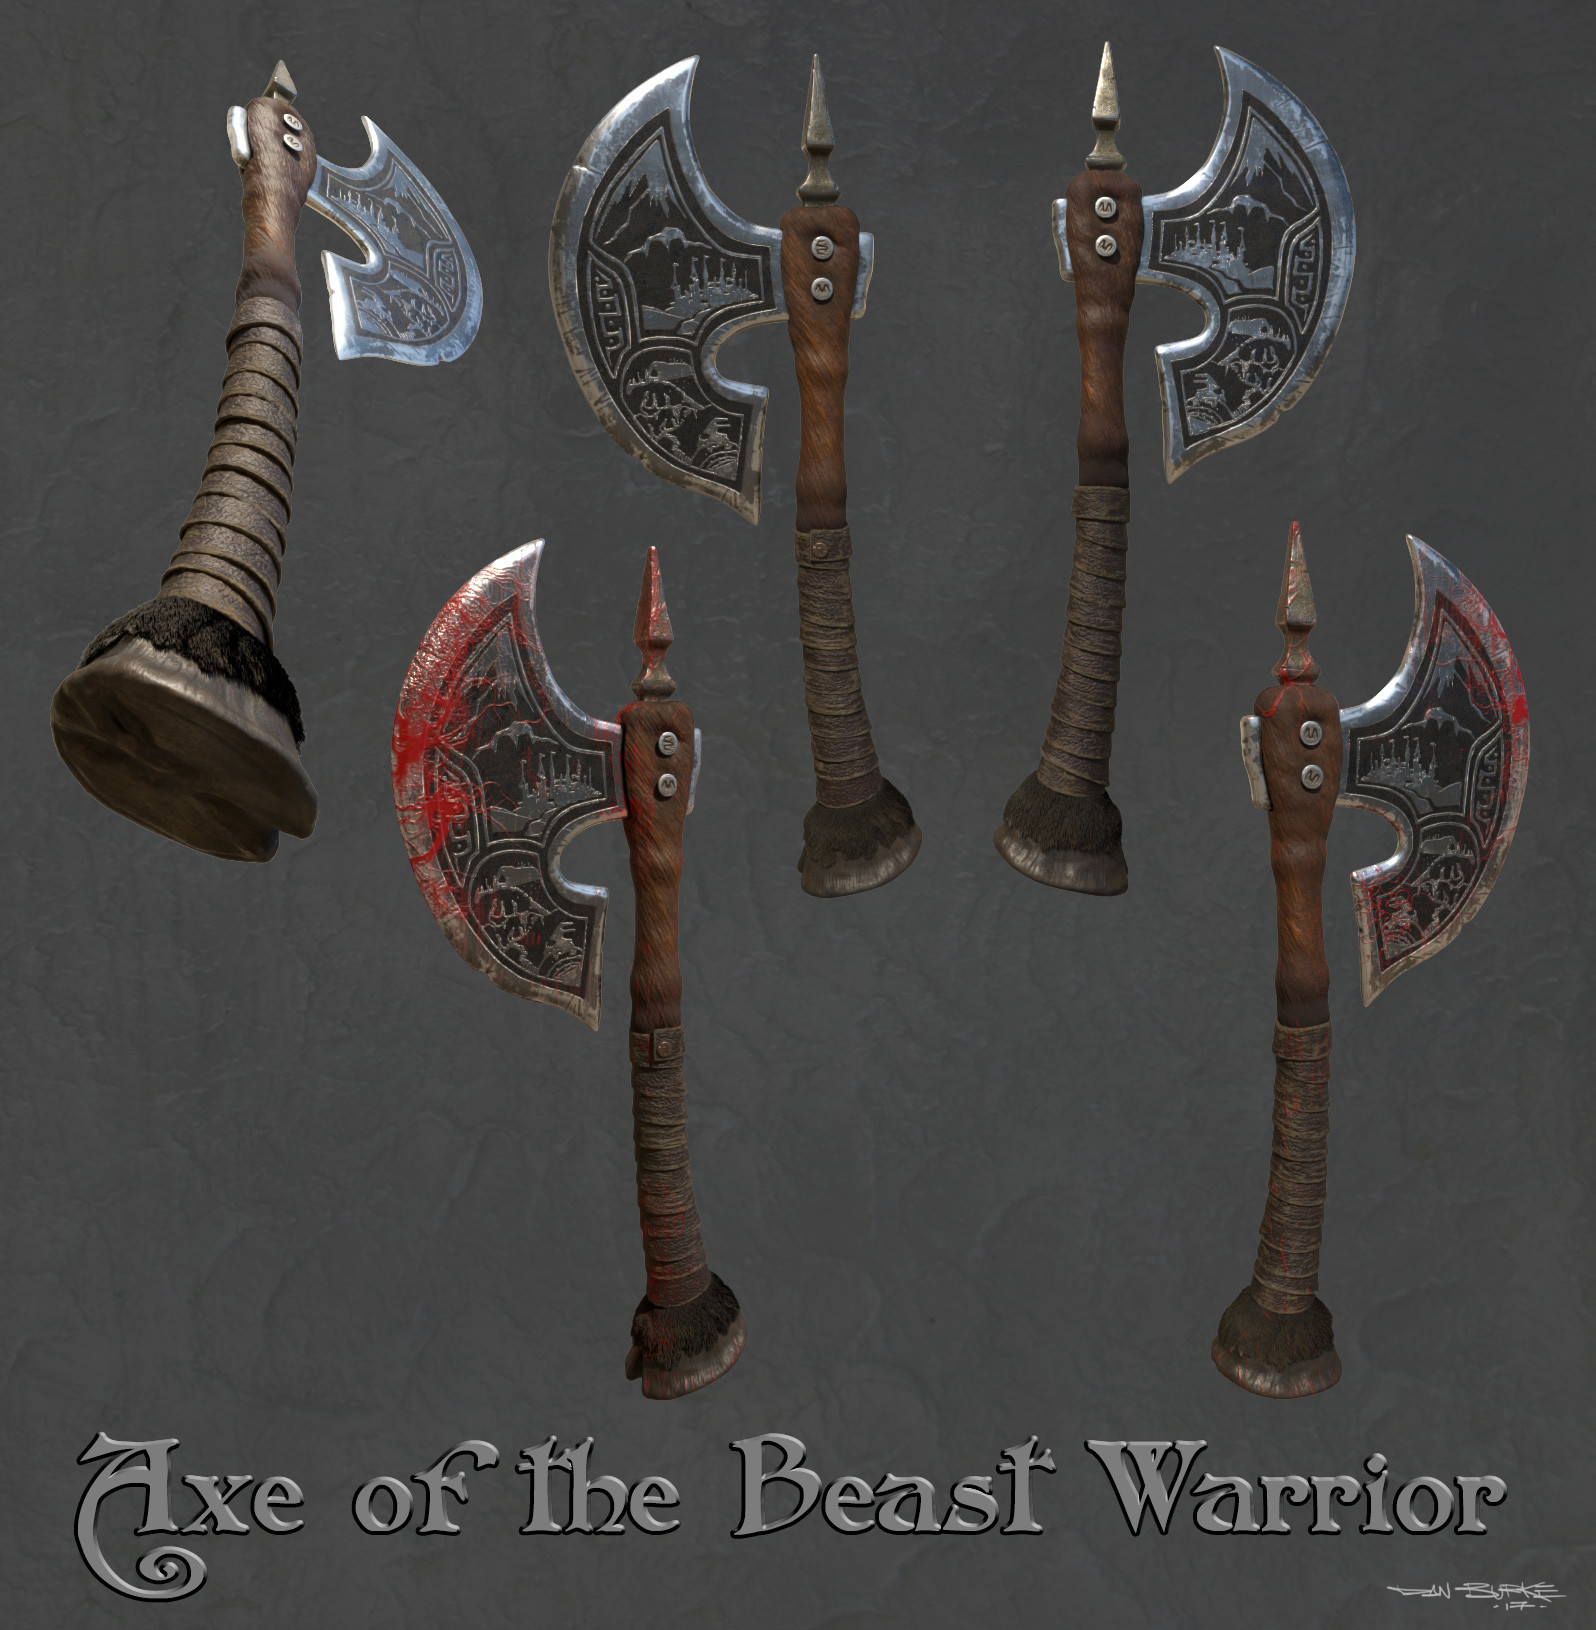 Axe of the Beast Warrior